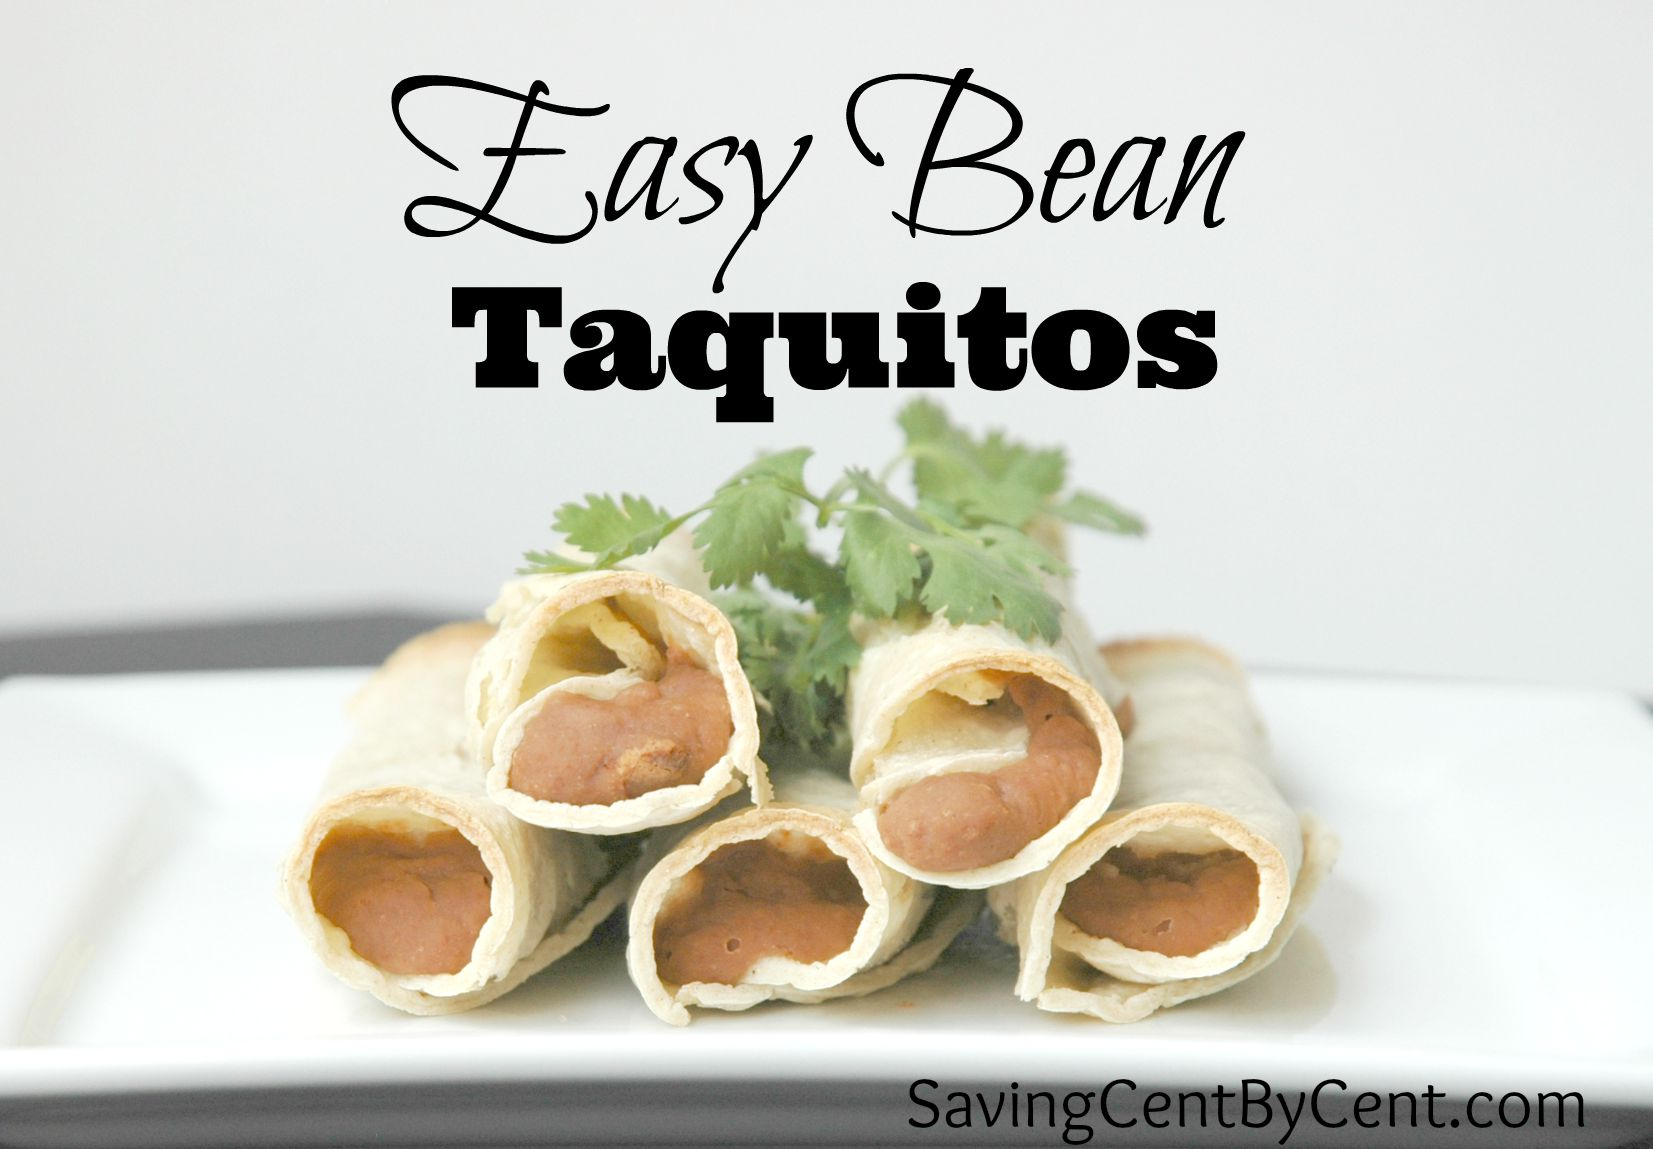 ... need a quick dinner idea these homemade and easy bean taquitos are one